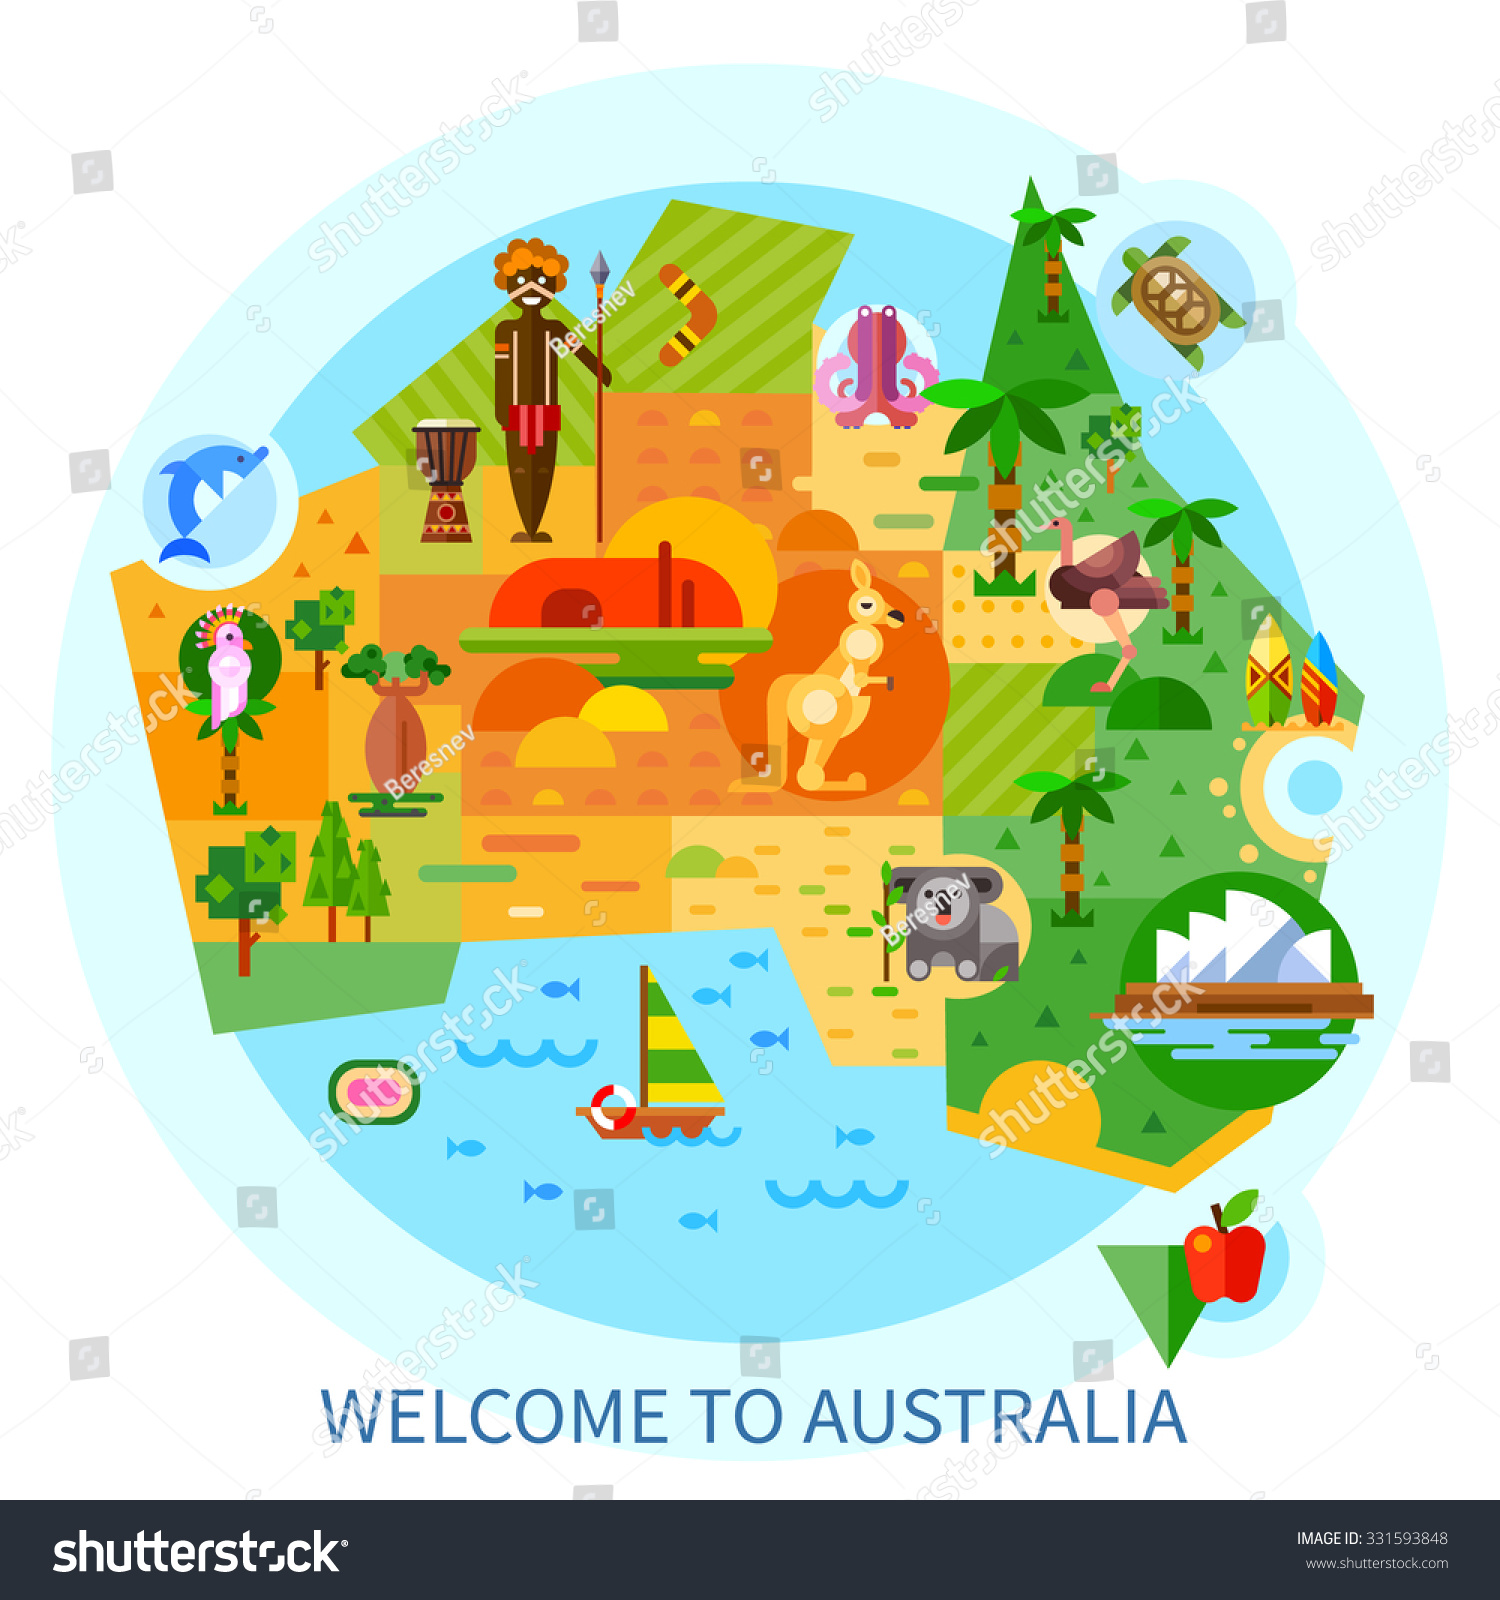 Mrs ruberrys class we have already learnt about this country image result for australia biocorpaavc